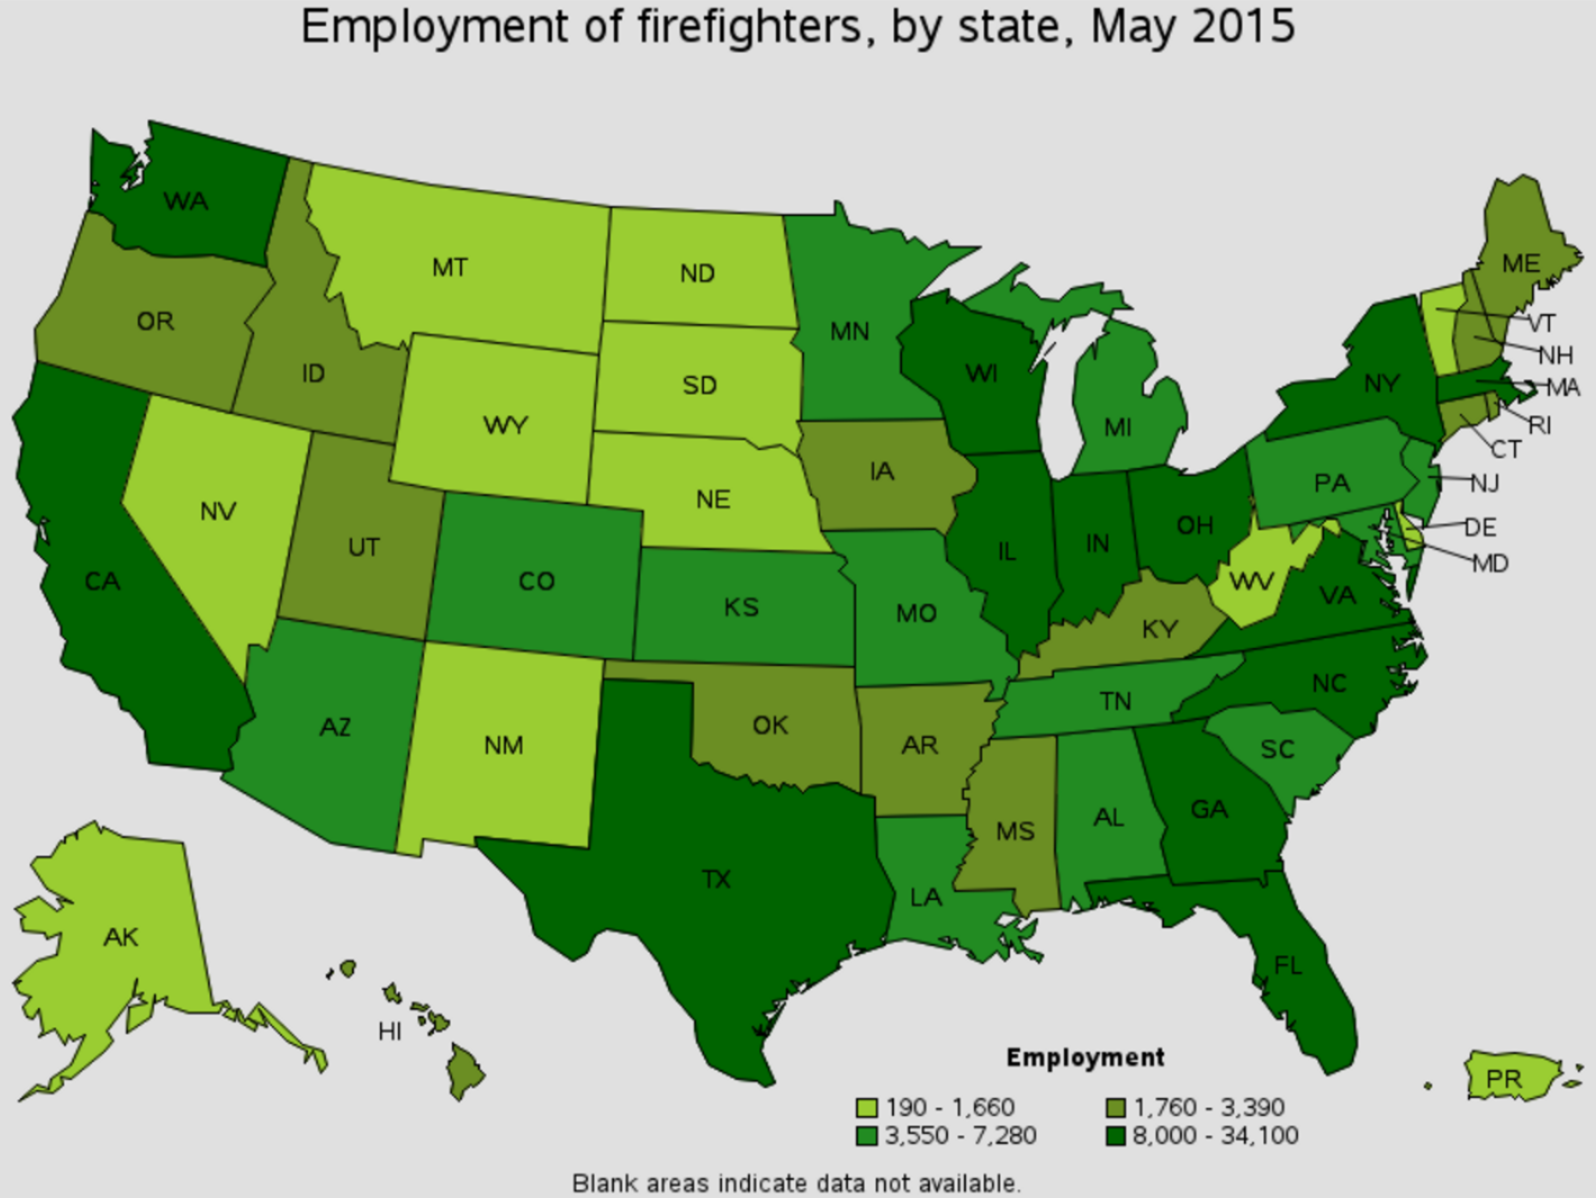 firefighter job outlook by state Weirton West Virginia